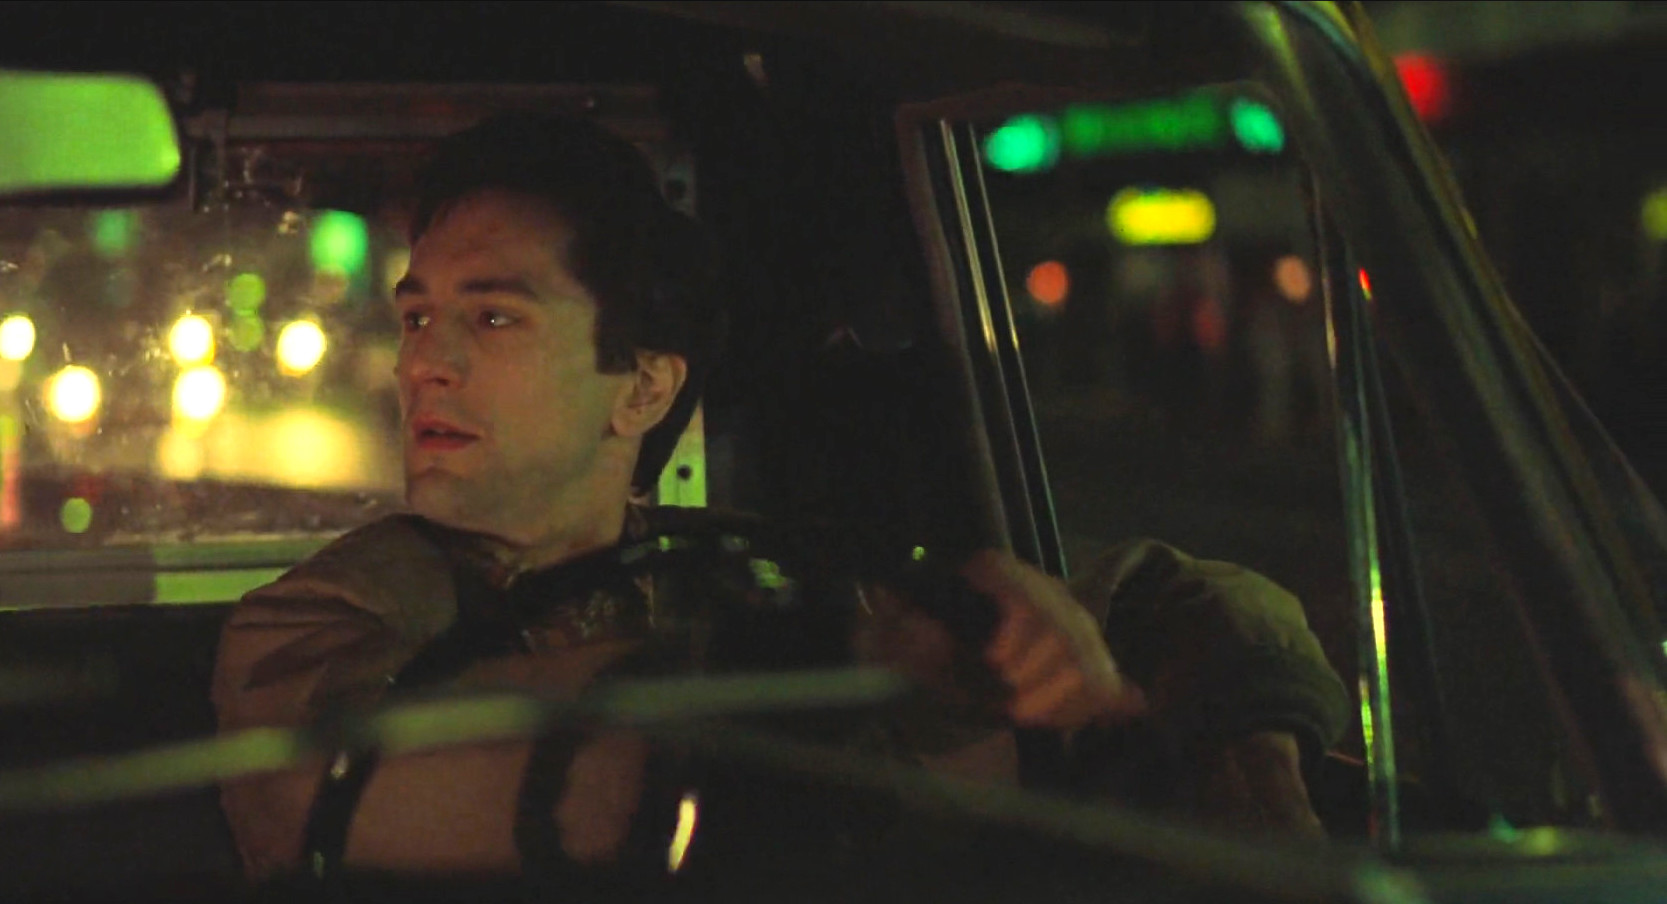 """Representations of Urban Space & Masculinity in """"Taxi Driver"""""""